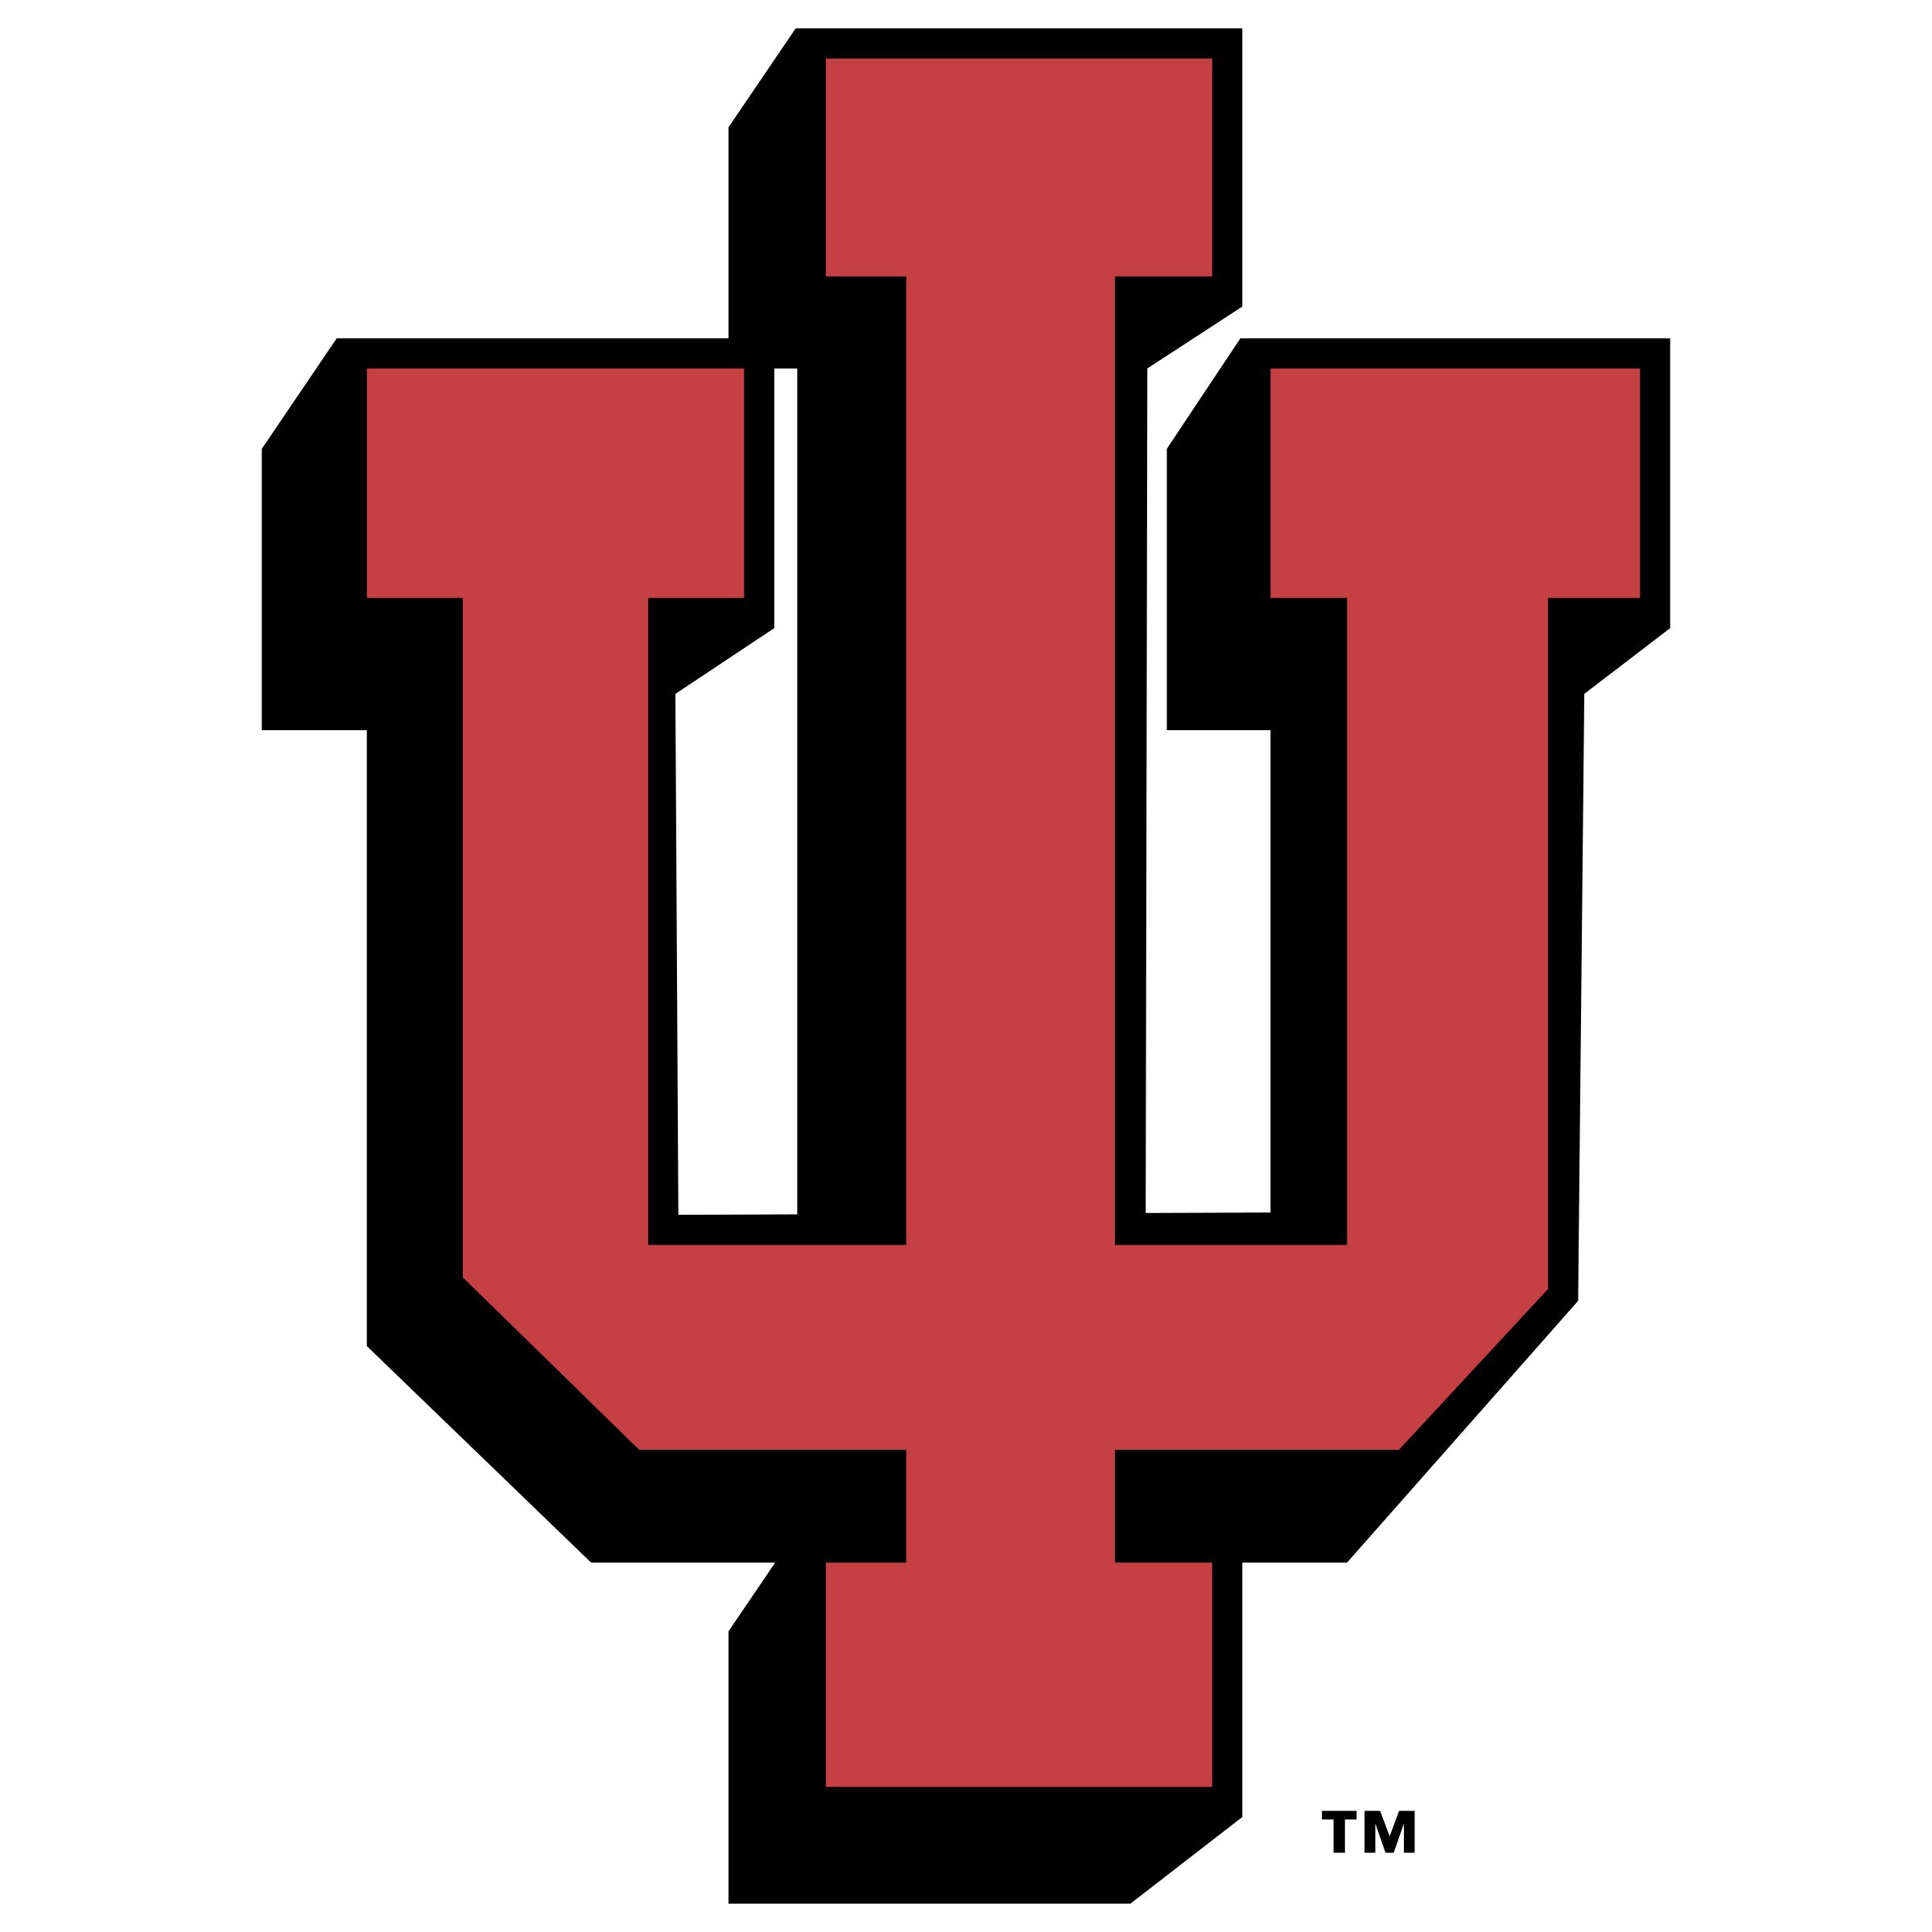 indiana-hoosiers-logo-png-transparent